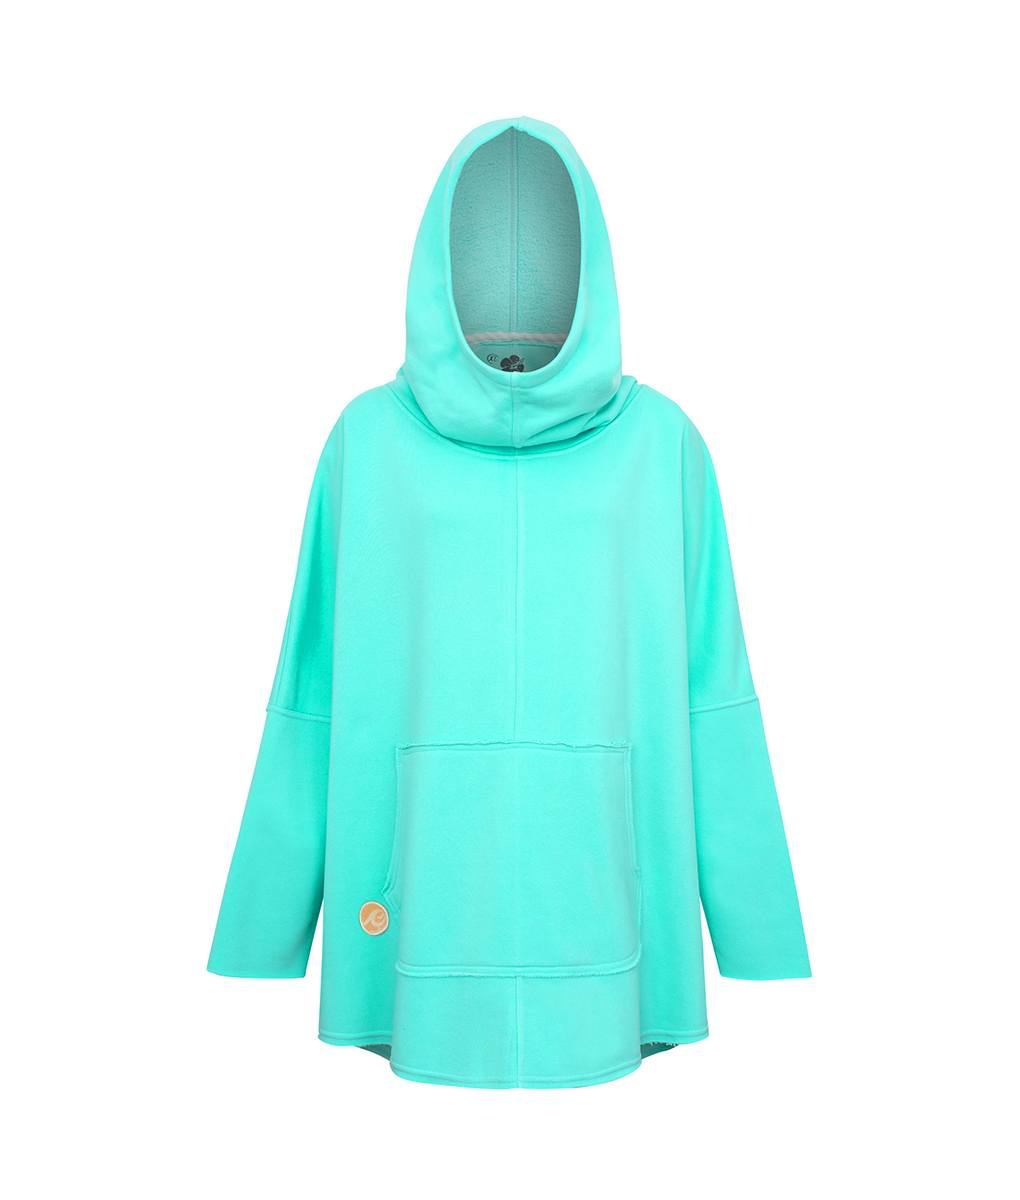 Oversized Hoodie with Surf Wave Pattern and Kangoo Pockets - Ocean Front Picture